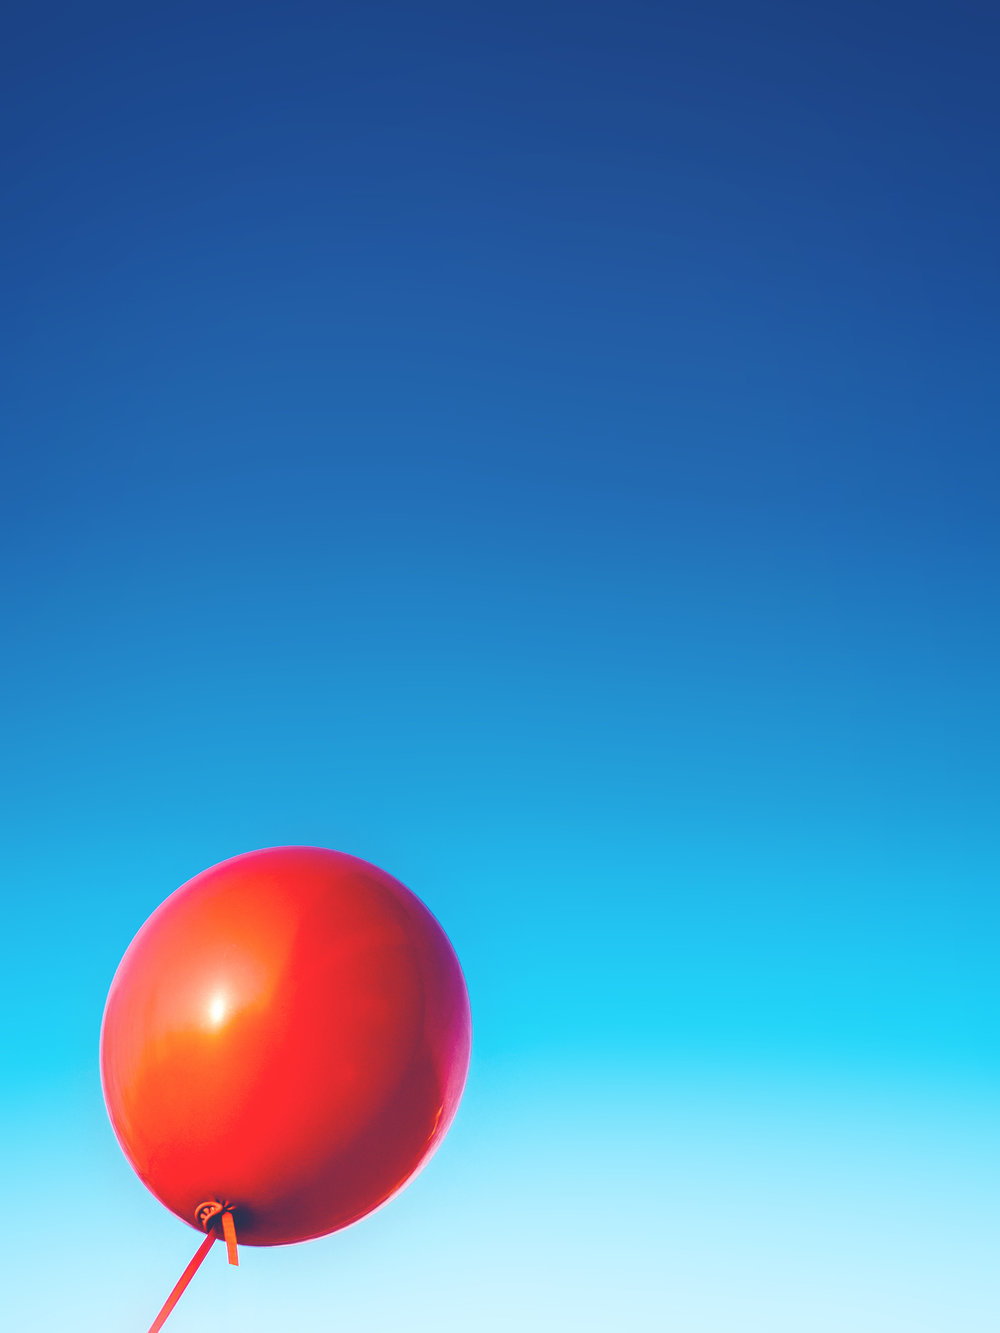 sky-red-blue-rubber.jpg